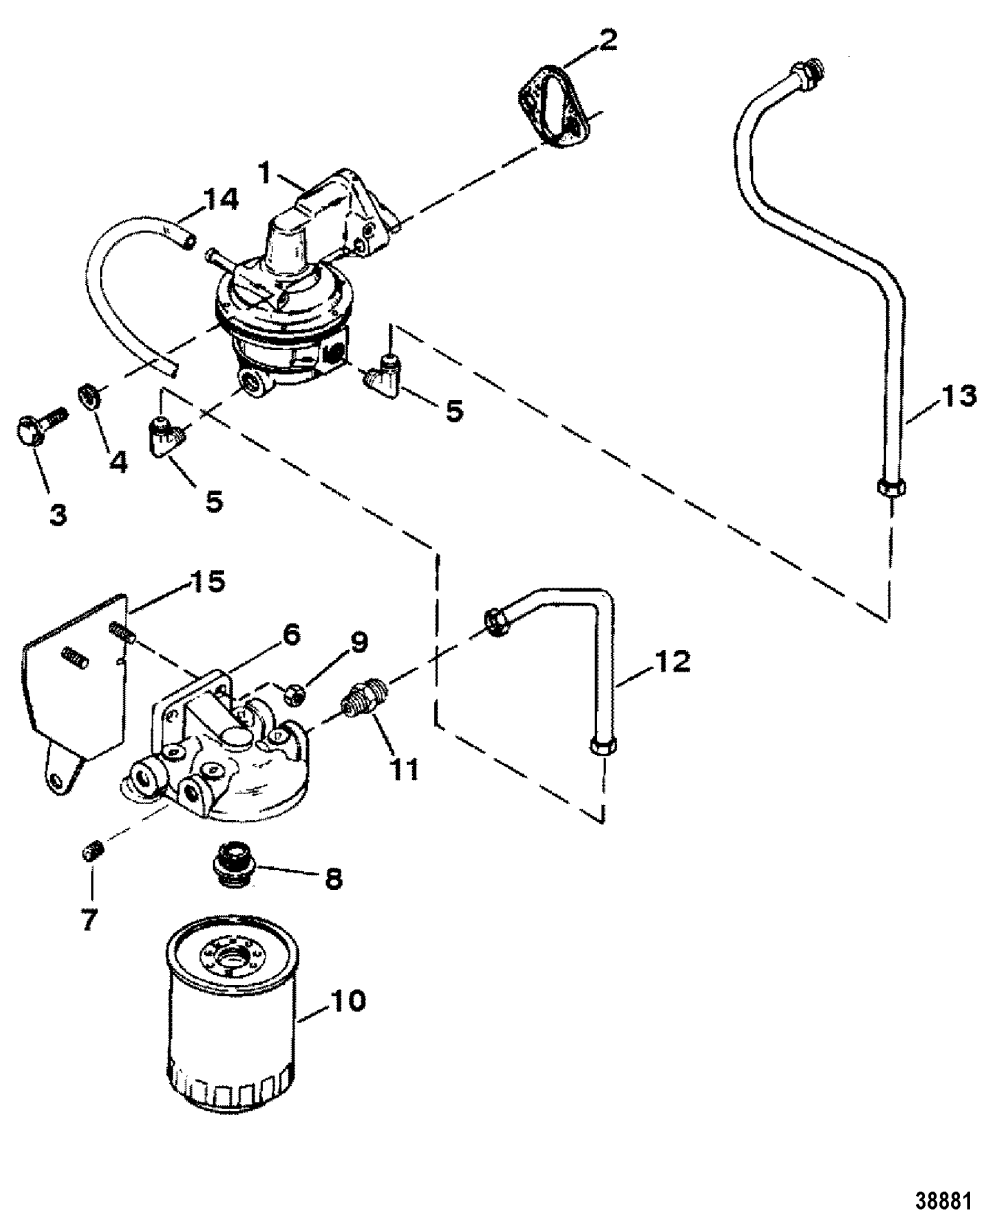 medium resolution of 7 3 fuel filter diagram wiring diagram used 1989 7 3 fuel system diagram